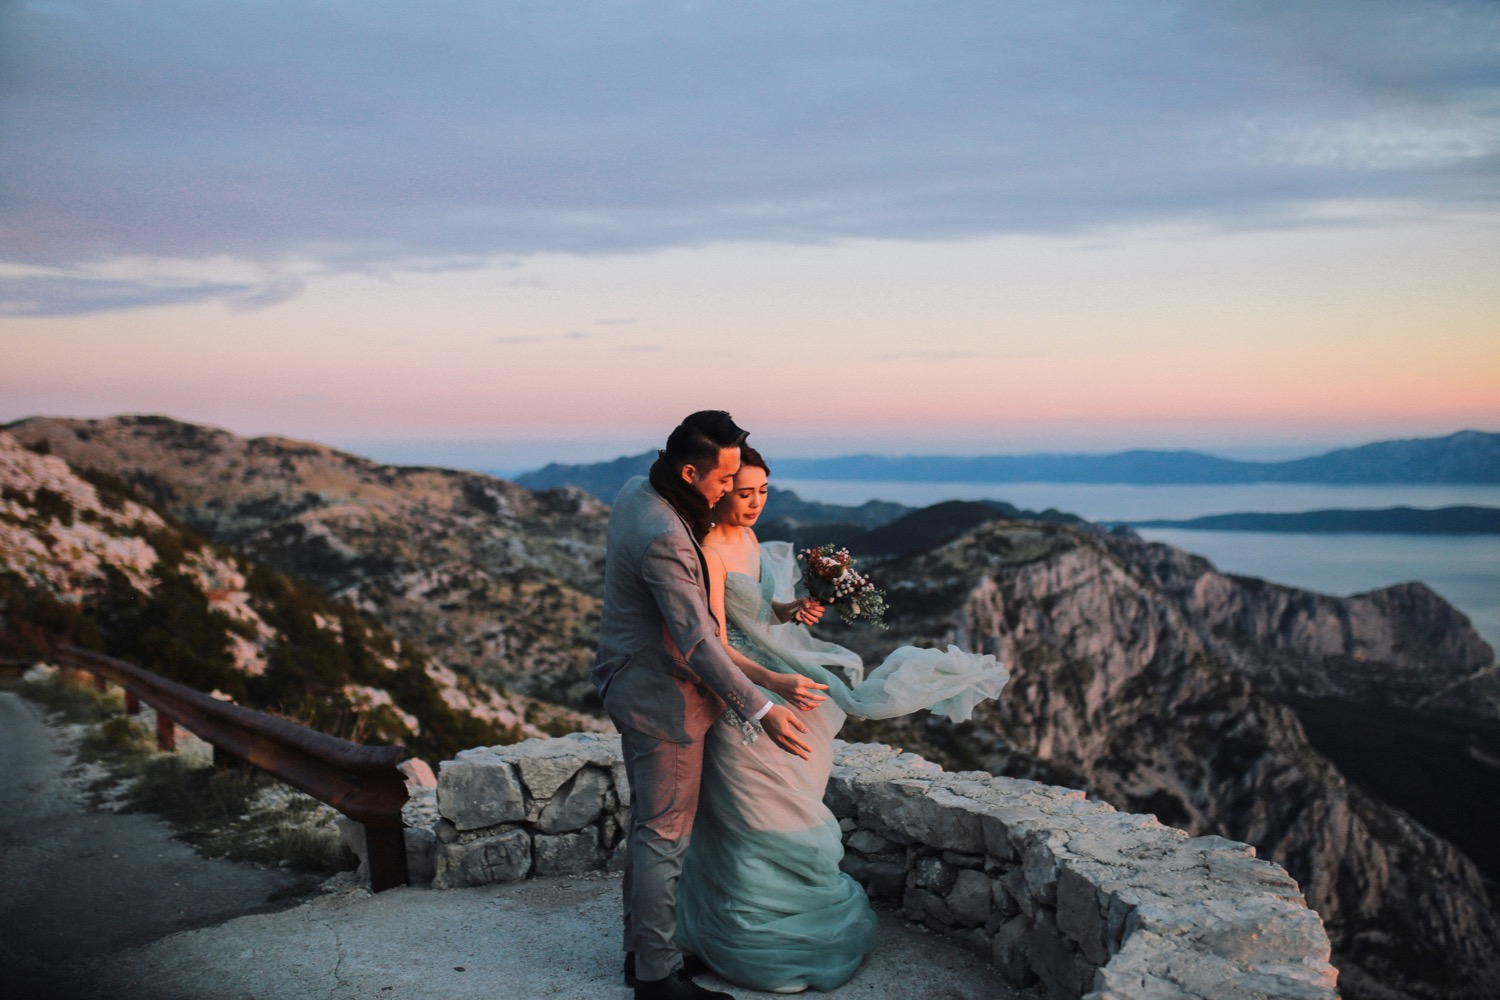 Croatia Biokovo nature park elopement jeannette nigel love and ventures photography 43 | Croatia Elopement Photographer and Videographer